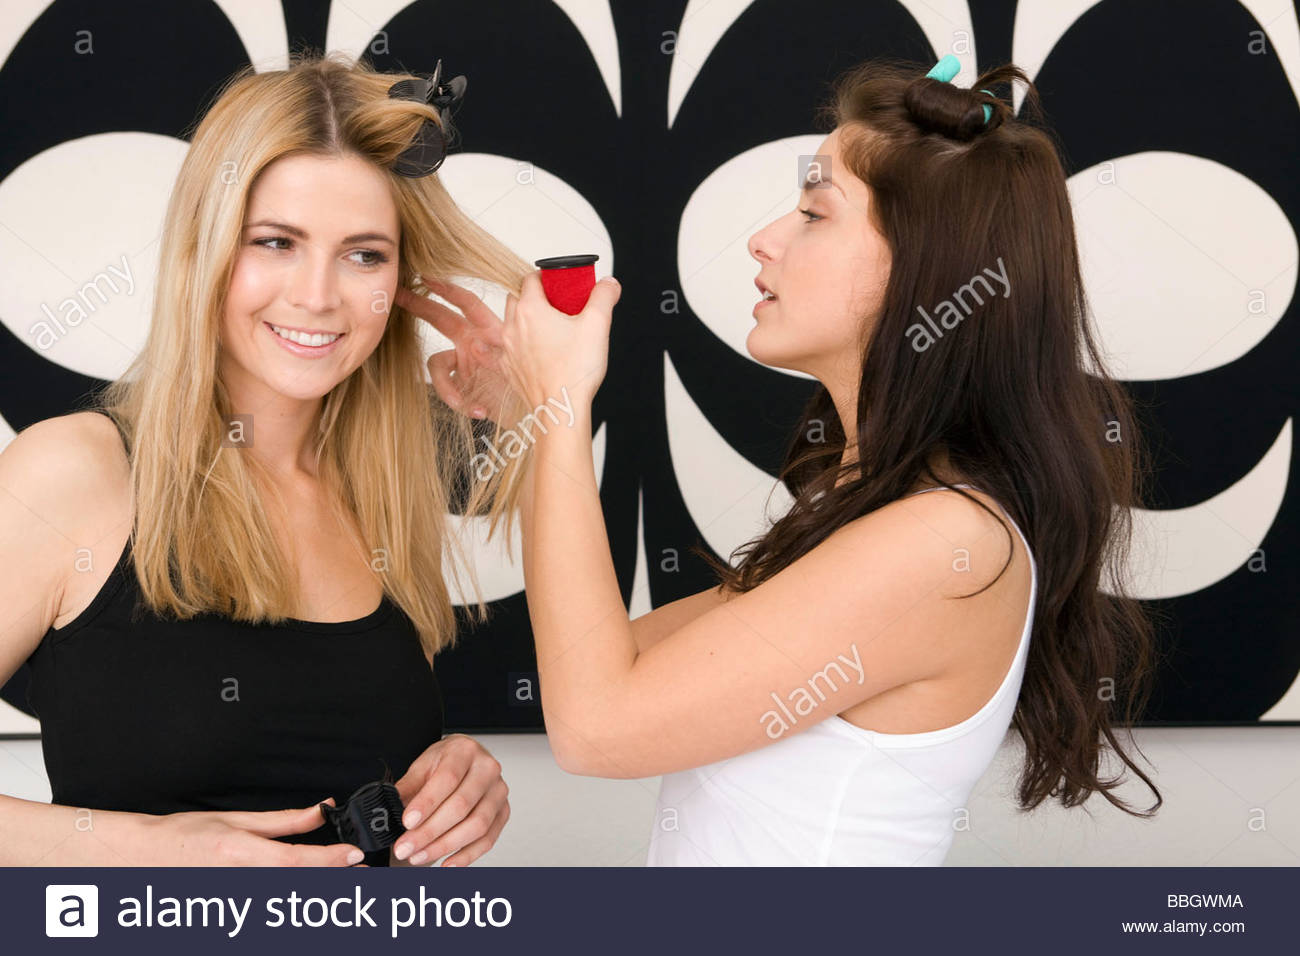 Two young women styling each others hair - Stock Image